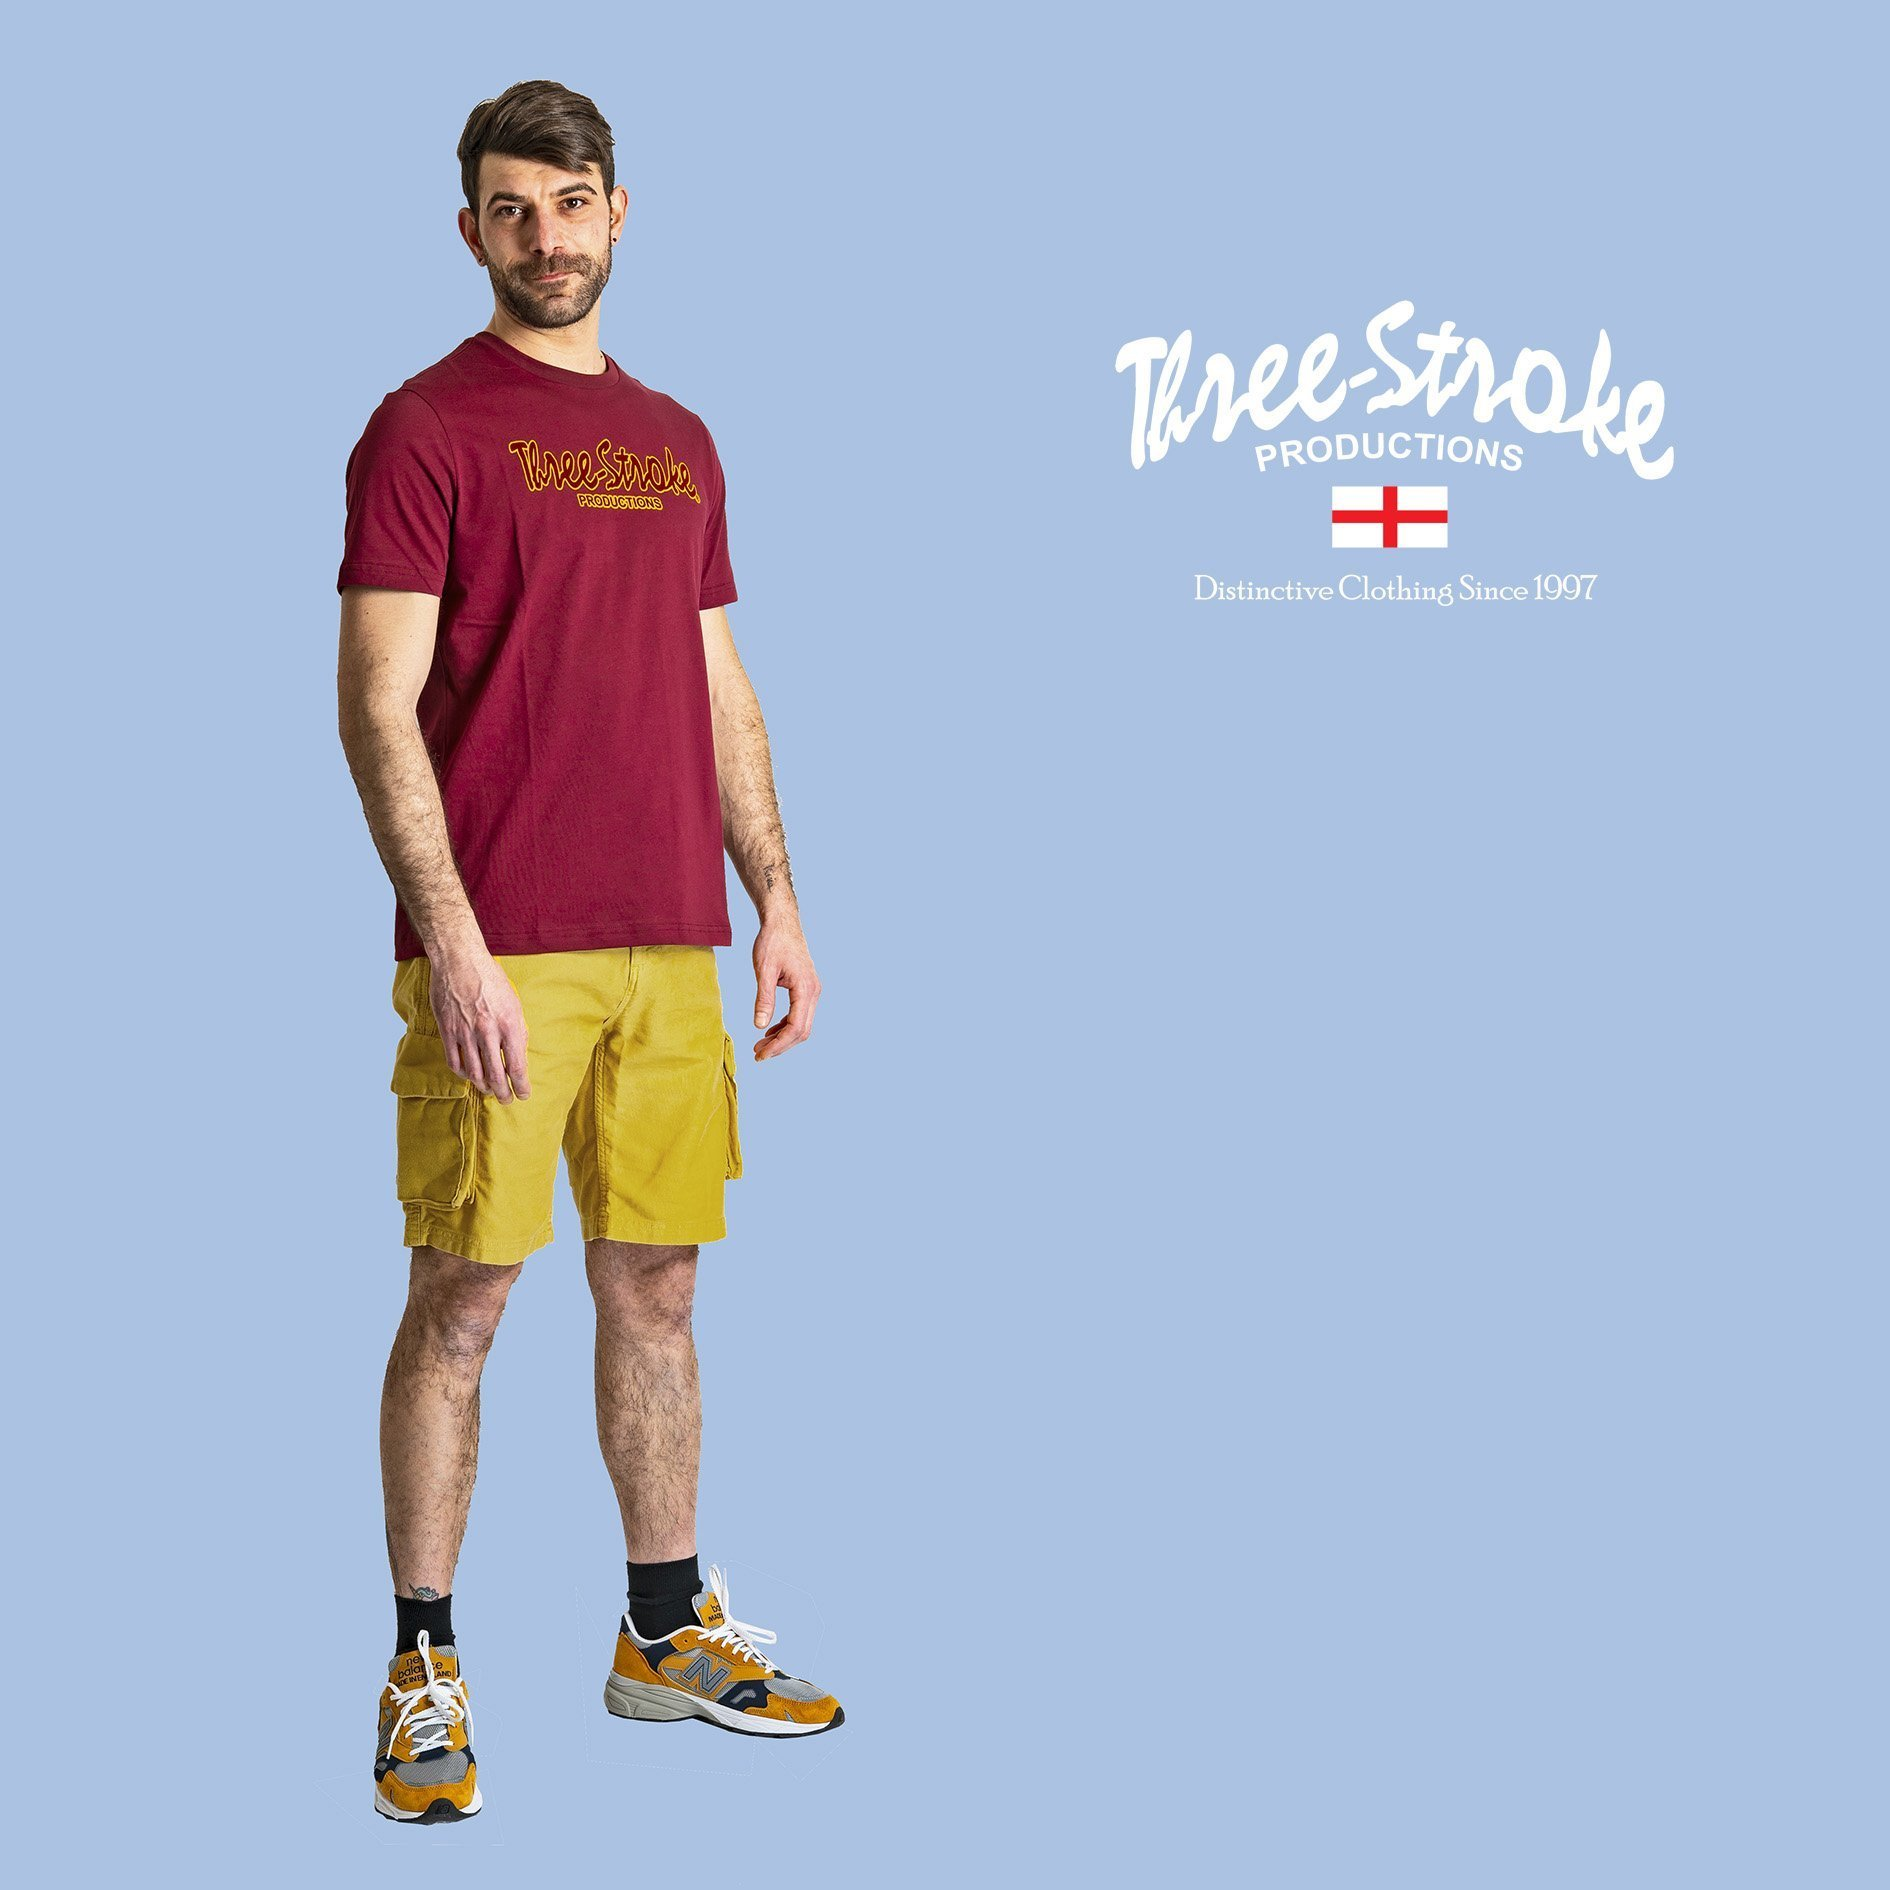 classic t shirt and combat shorts by Three Stroke Productions SS21